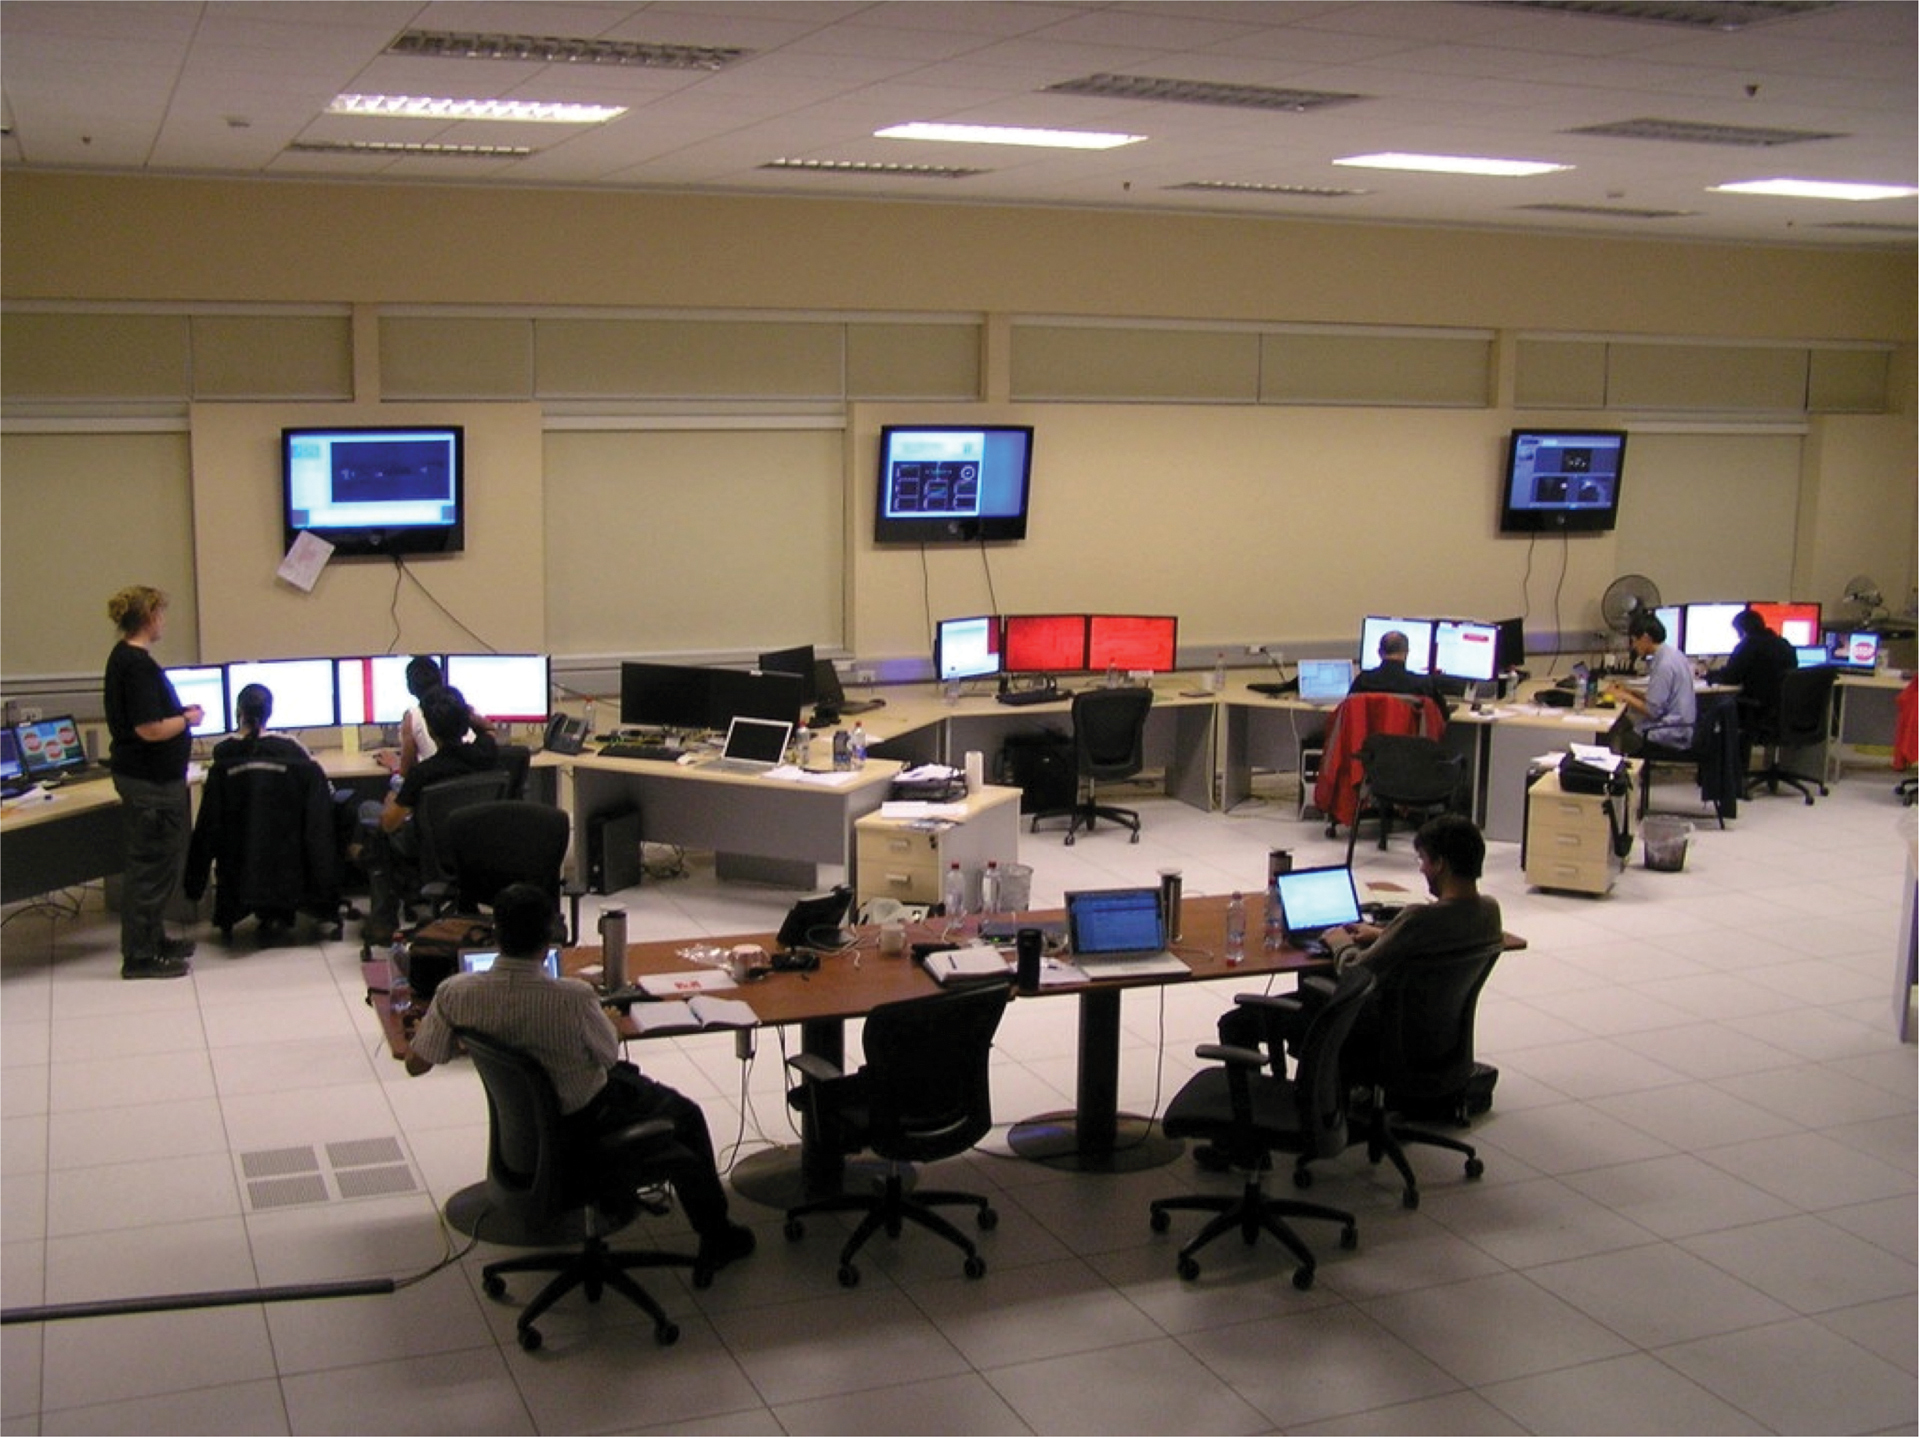 ALMA Control Room, September 2011